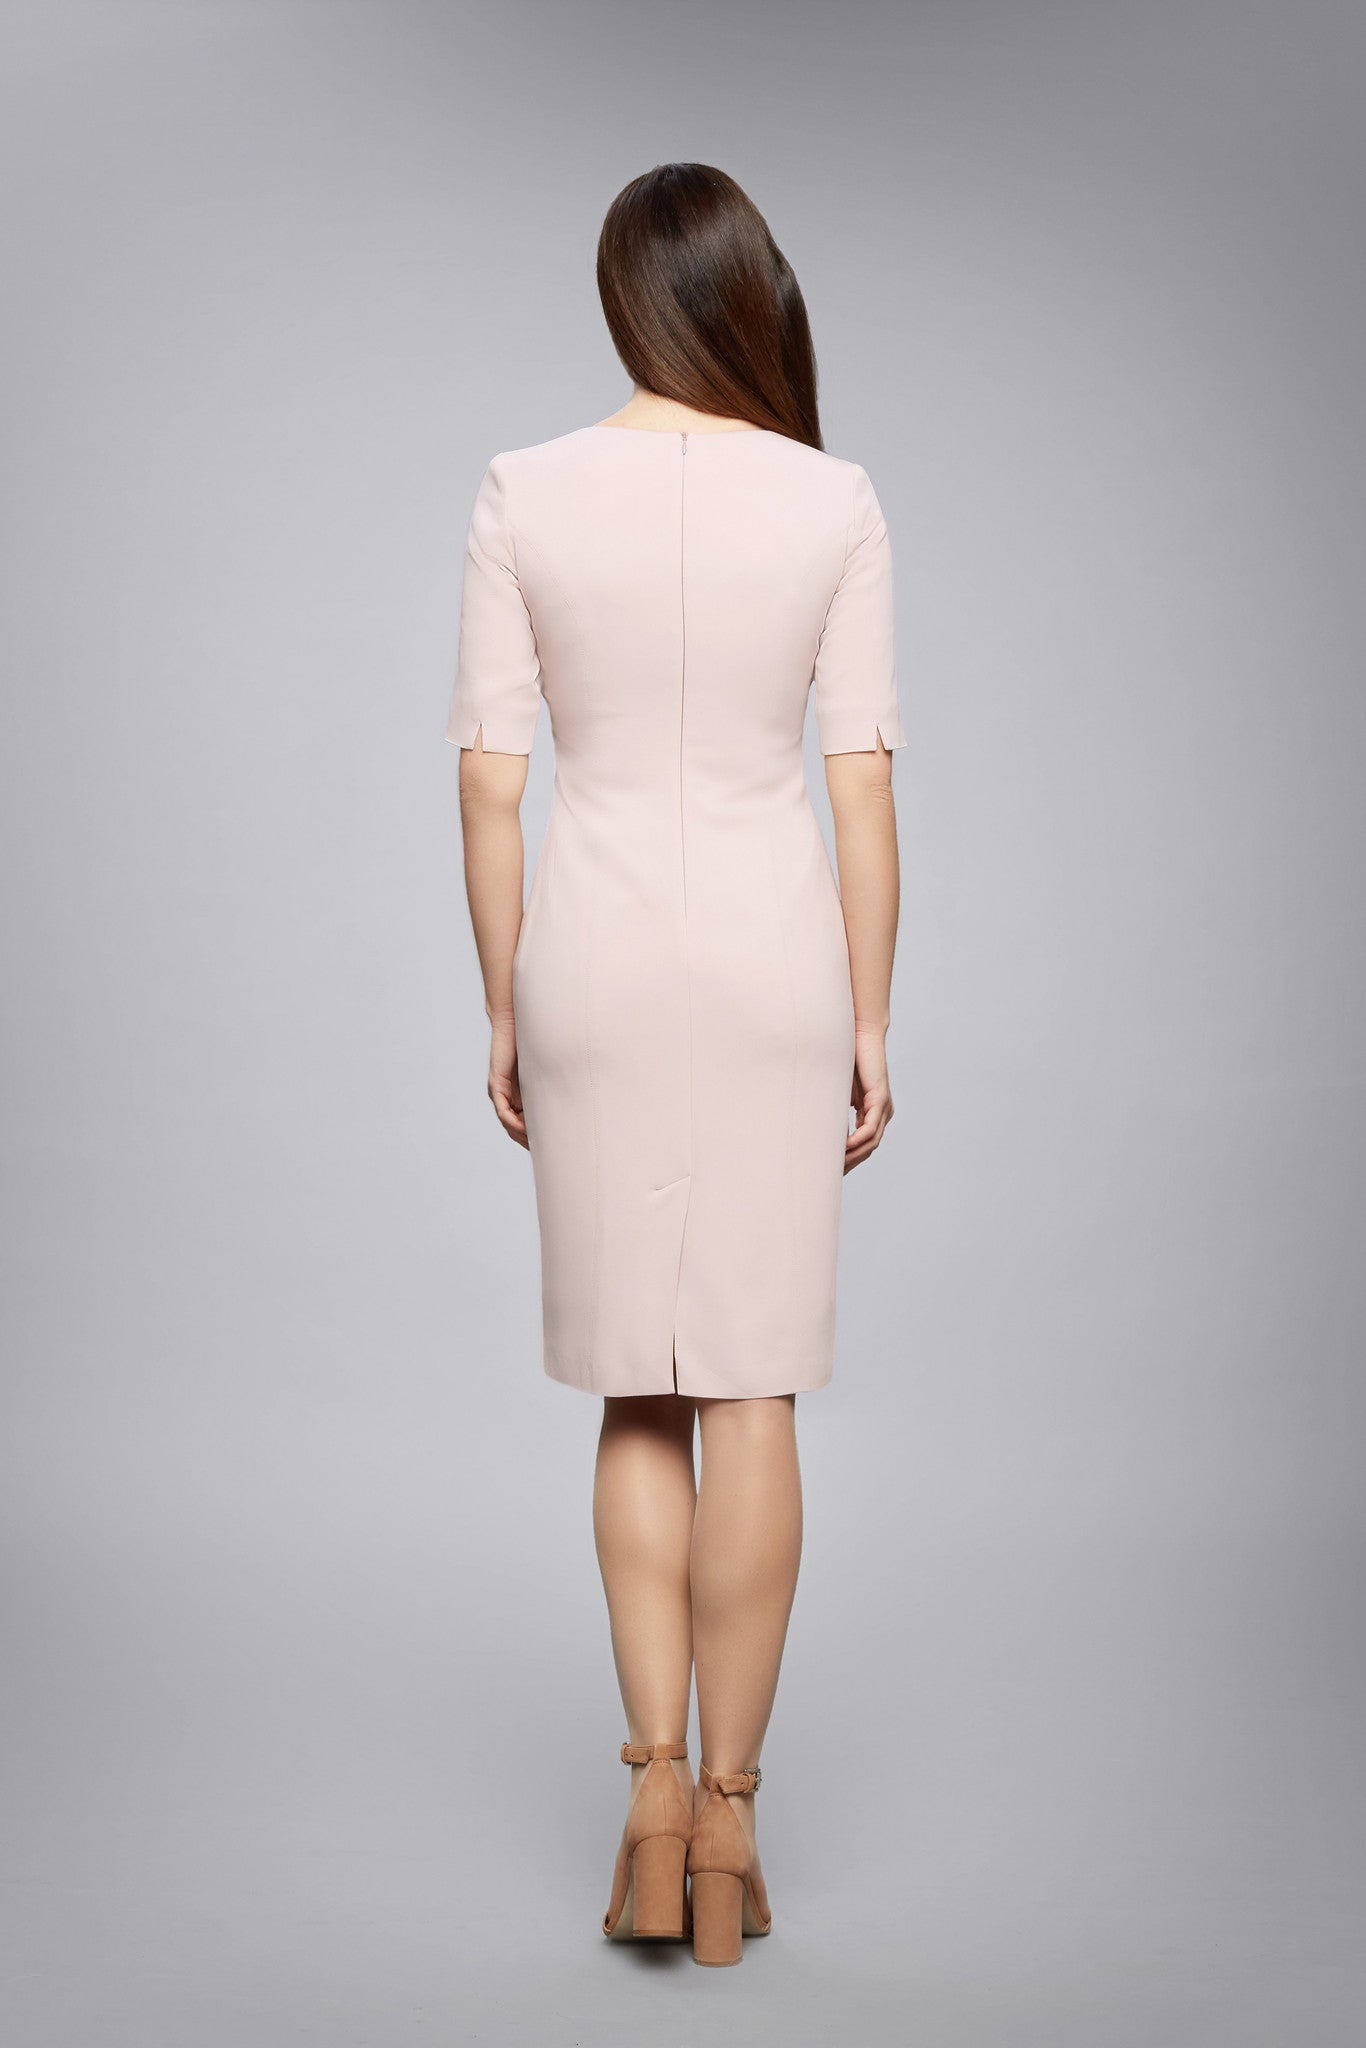 Powder Pink Fitted Knee Length Dress with Asymmetrical Neckline